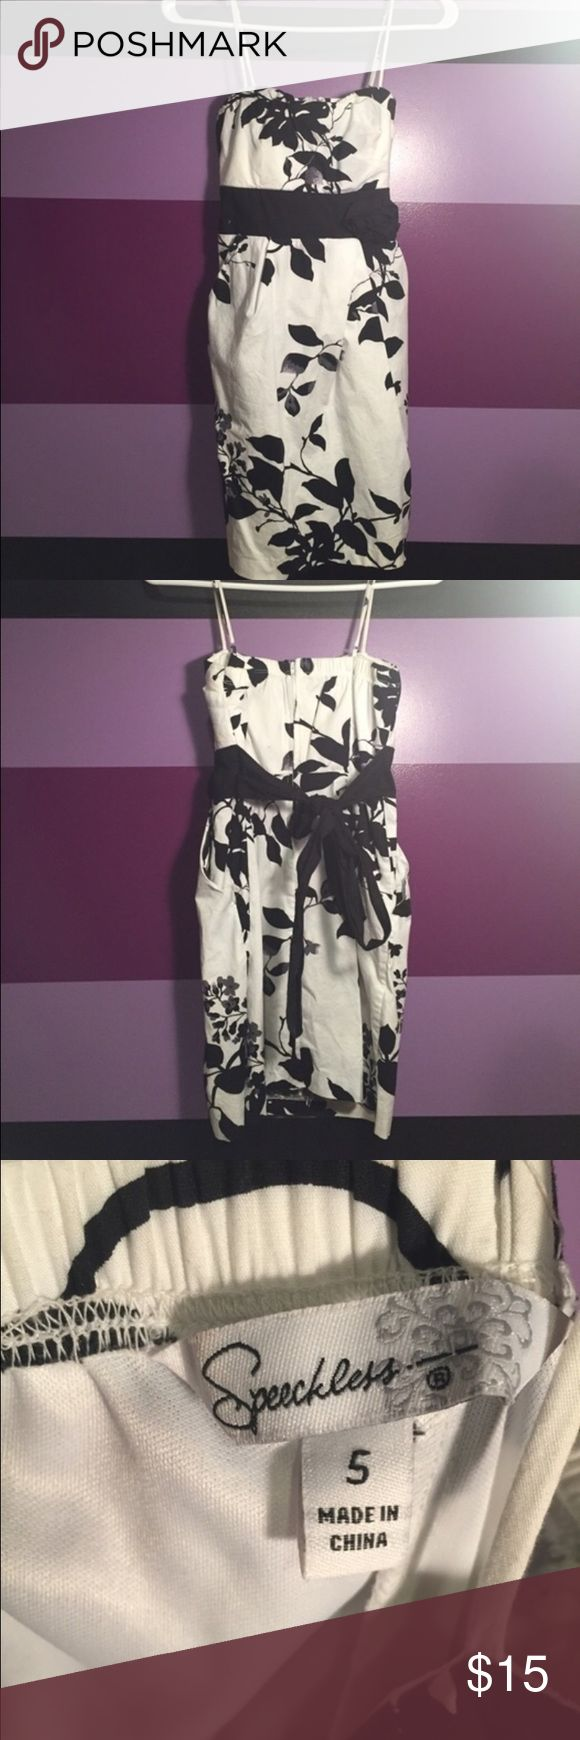 Black and White Floral Mini Dress Super cute, never worn! Bought it and it was too small. Speechless Dresses Mini